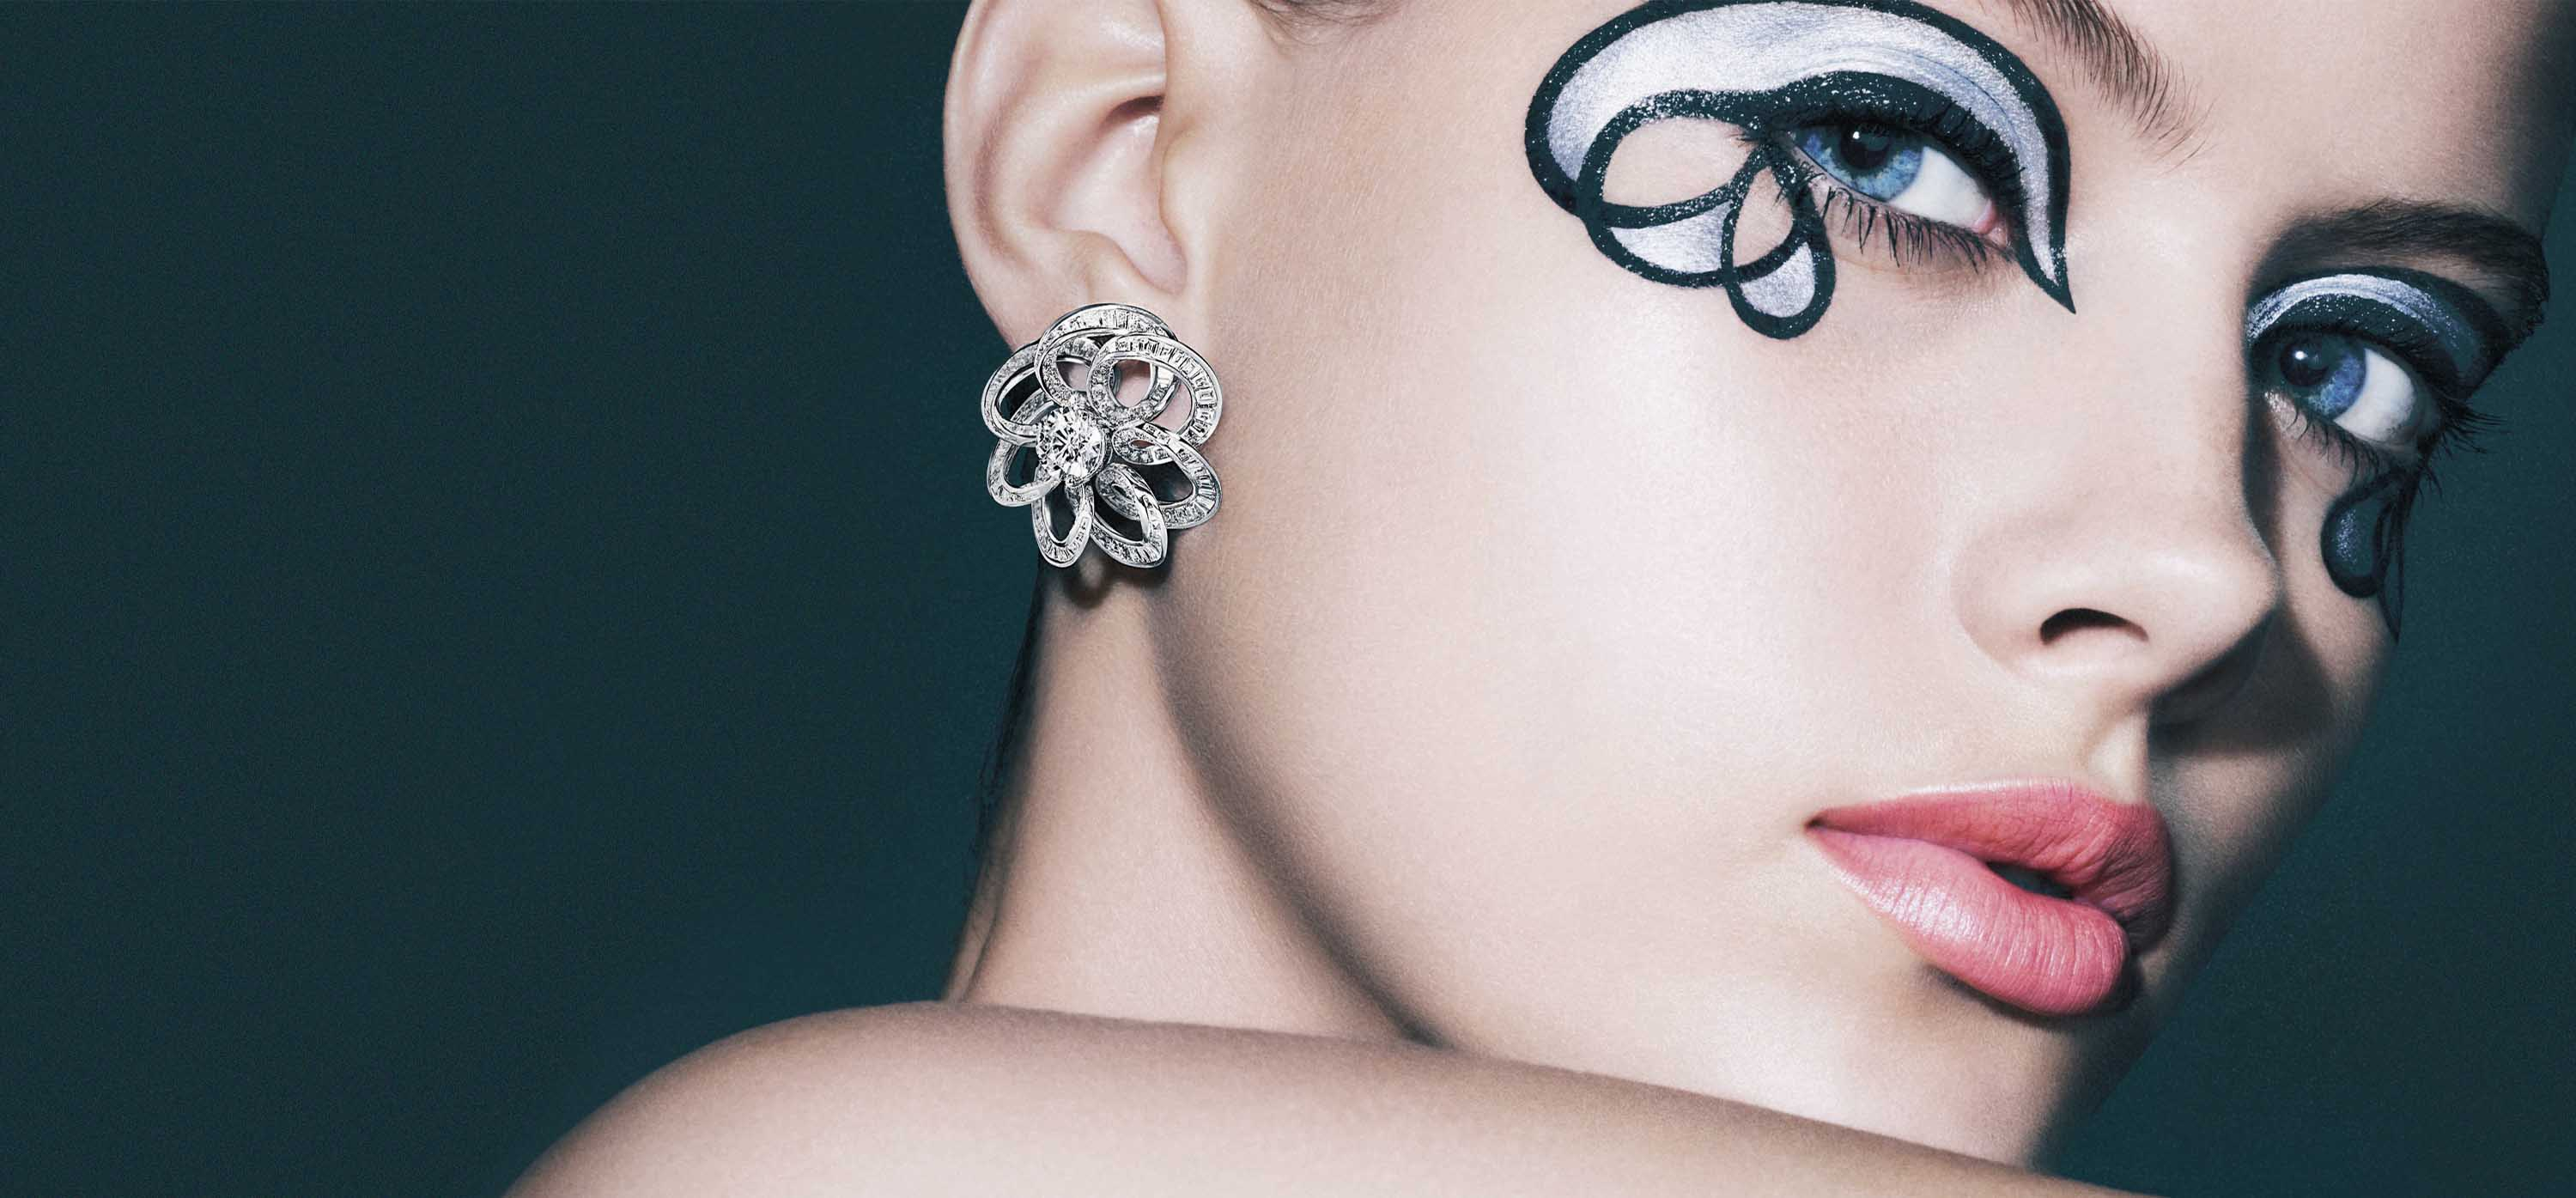 Model wearing Inspired by Twombly earrings from the Graff jewellery collection